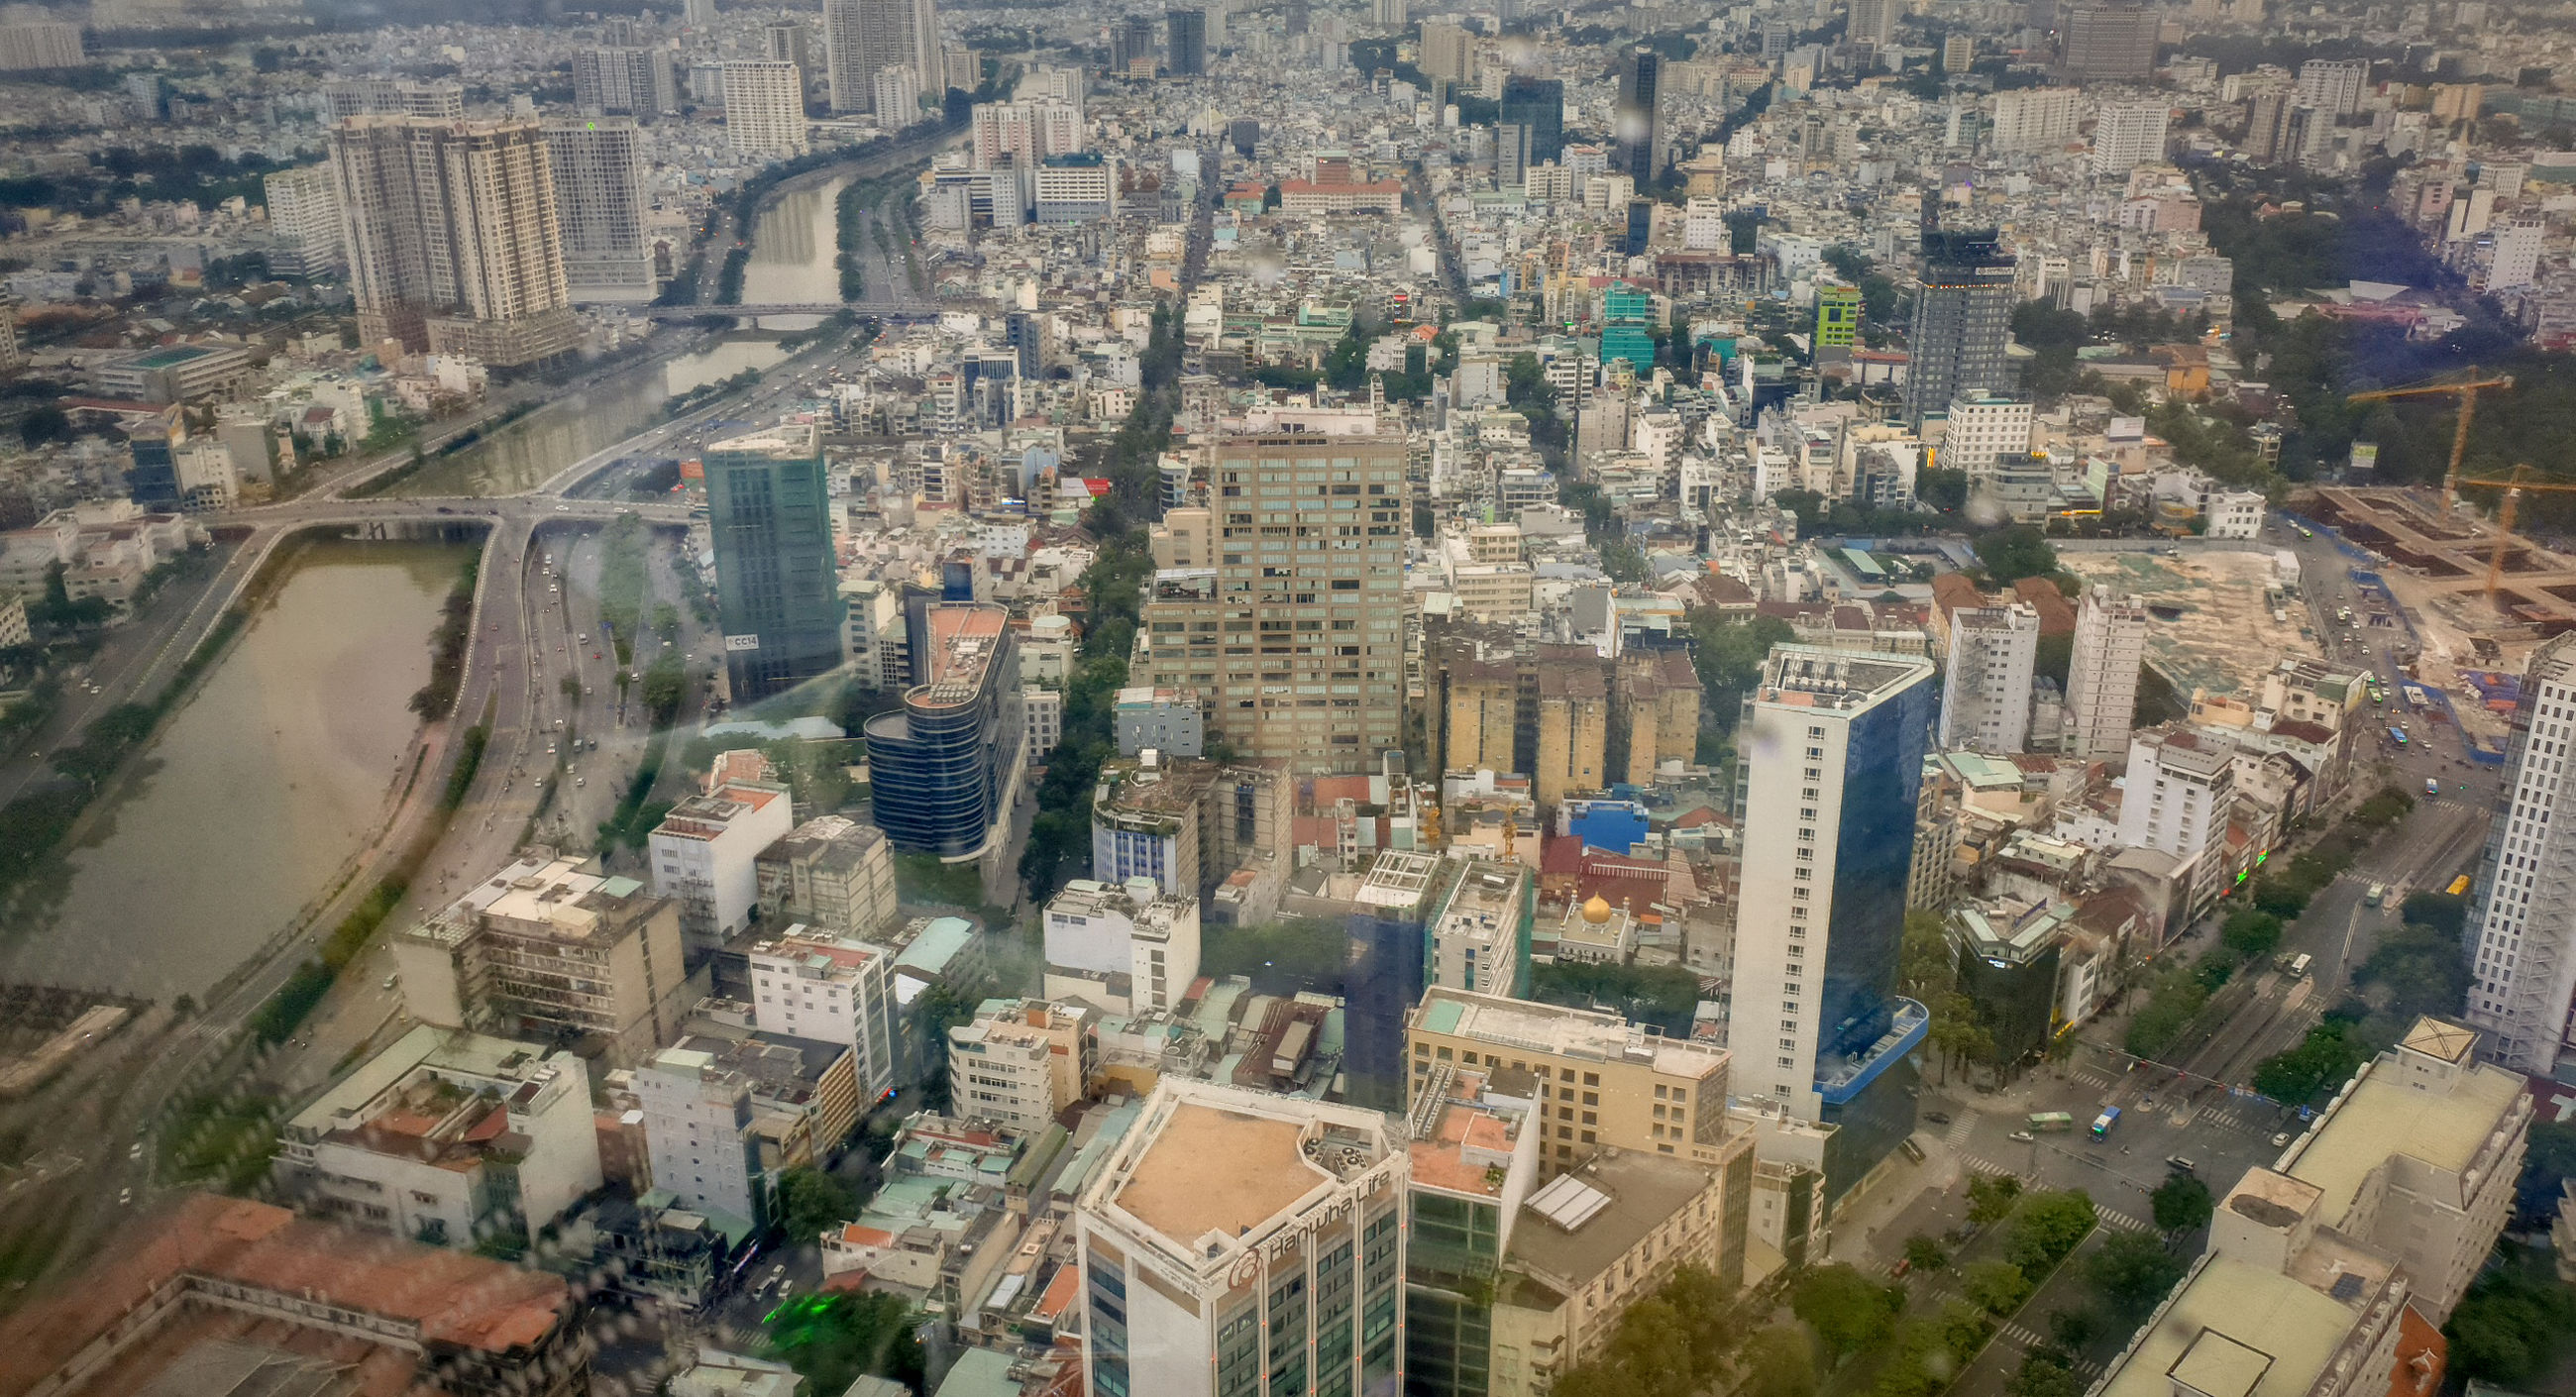 building exterior, architecture, built structure, city, cityscape, building, high angle view, residential district, aerial view, crowd, day, crowded, office building exterior, travel destinations, skyscraper, tower, outdoors, nature, travel, urban sprawl